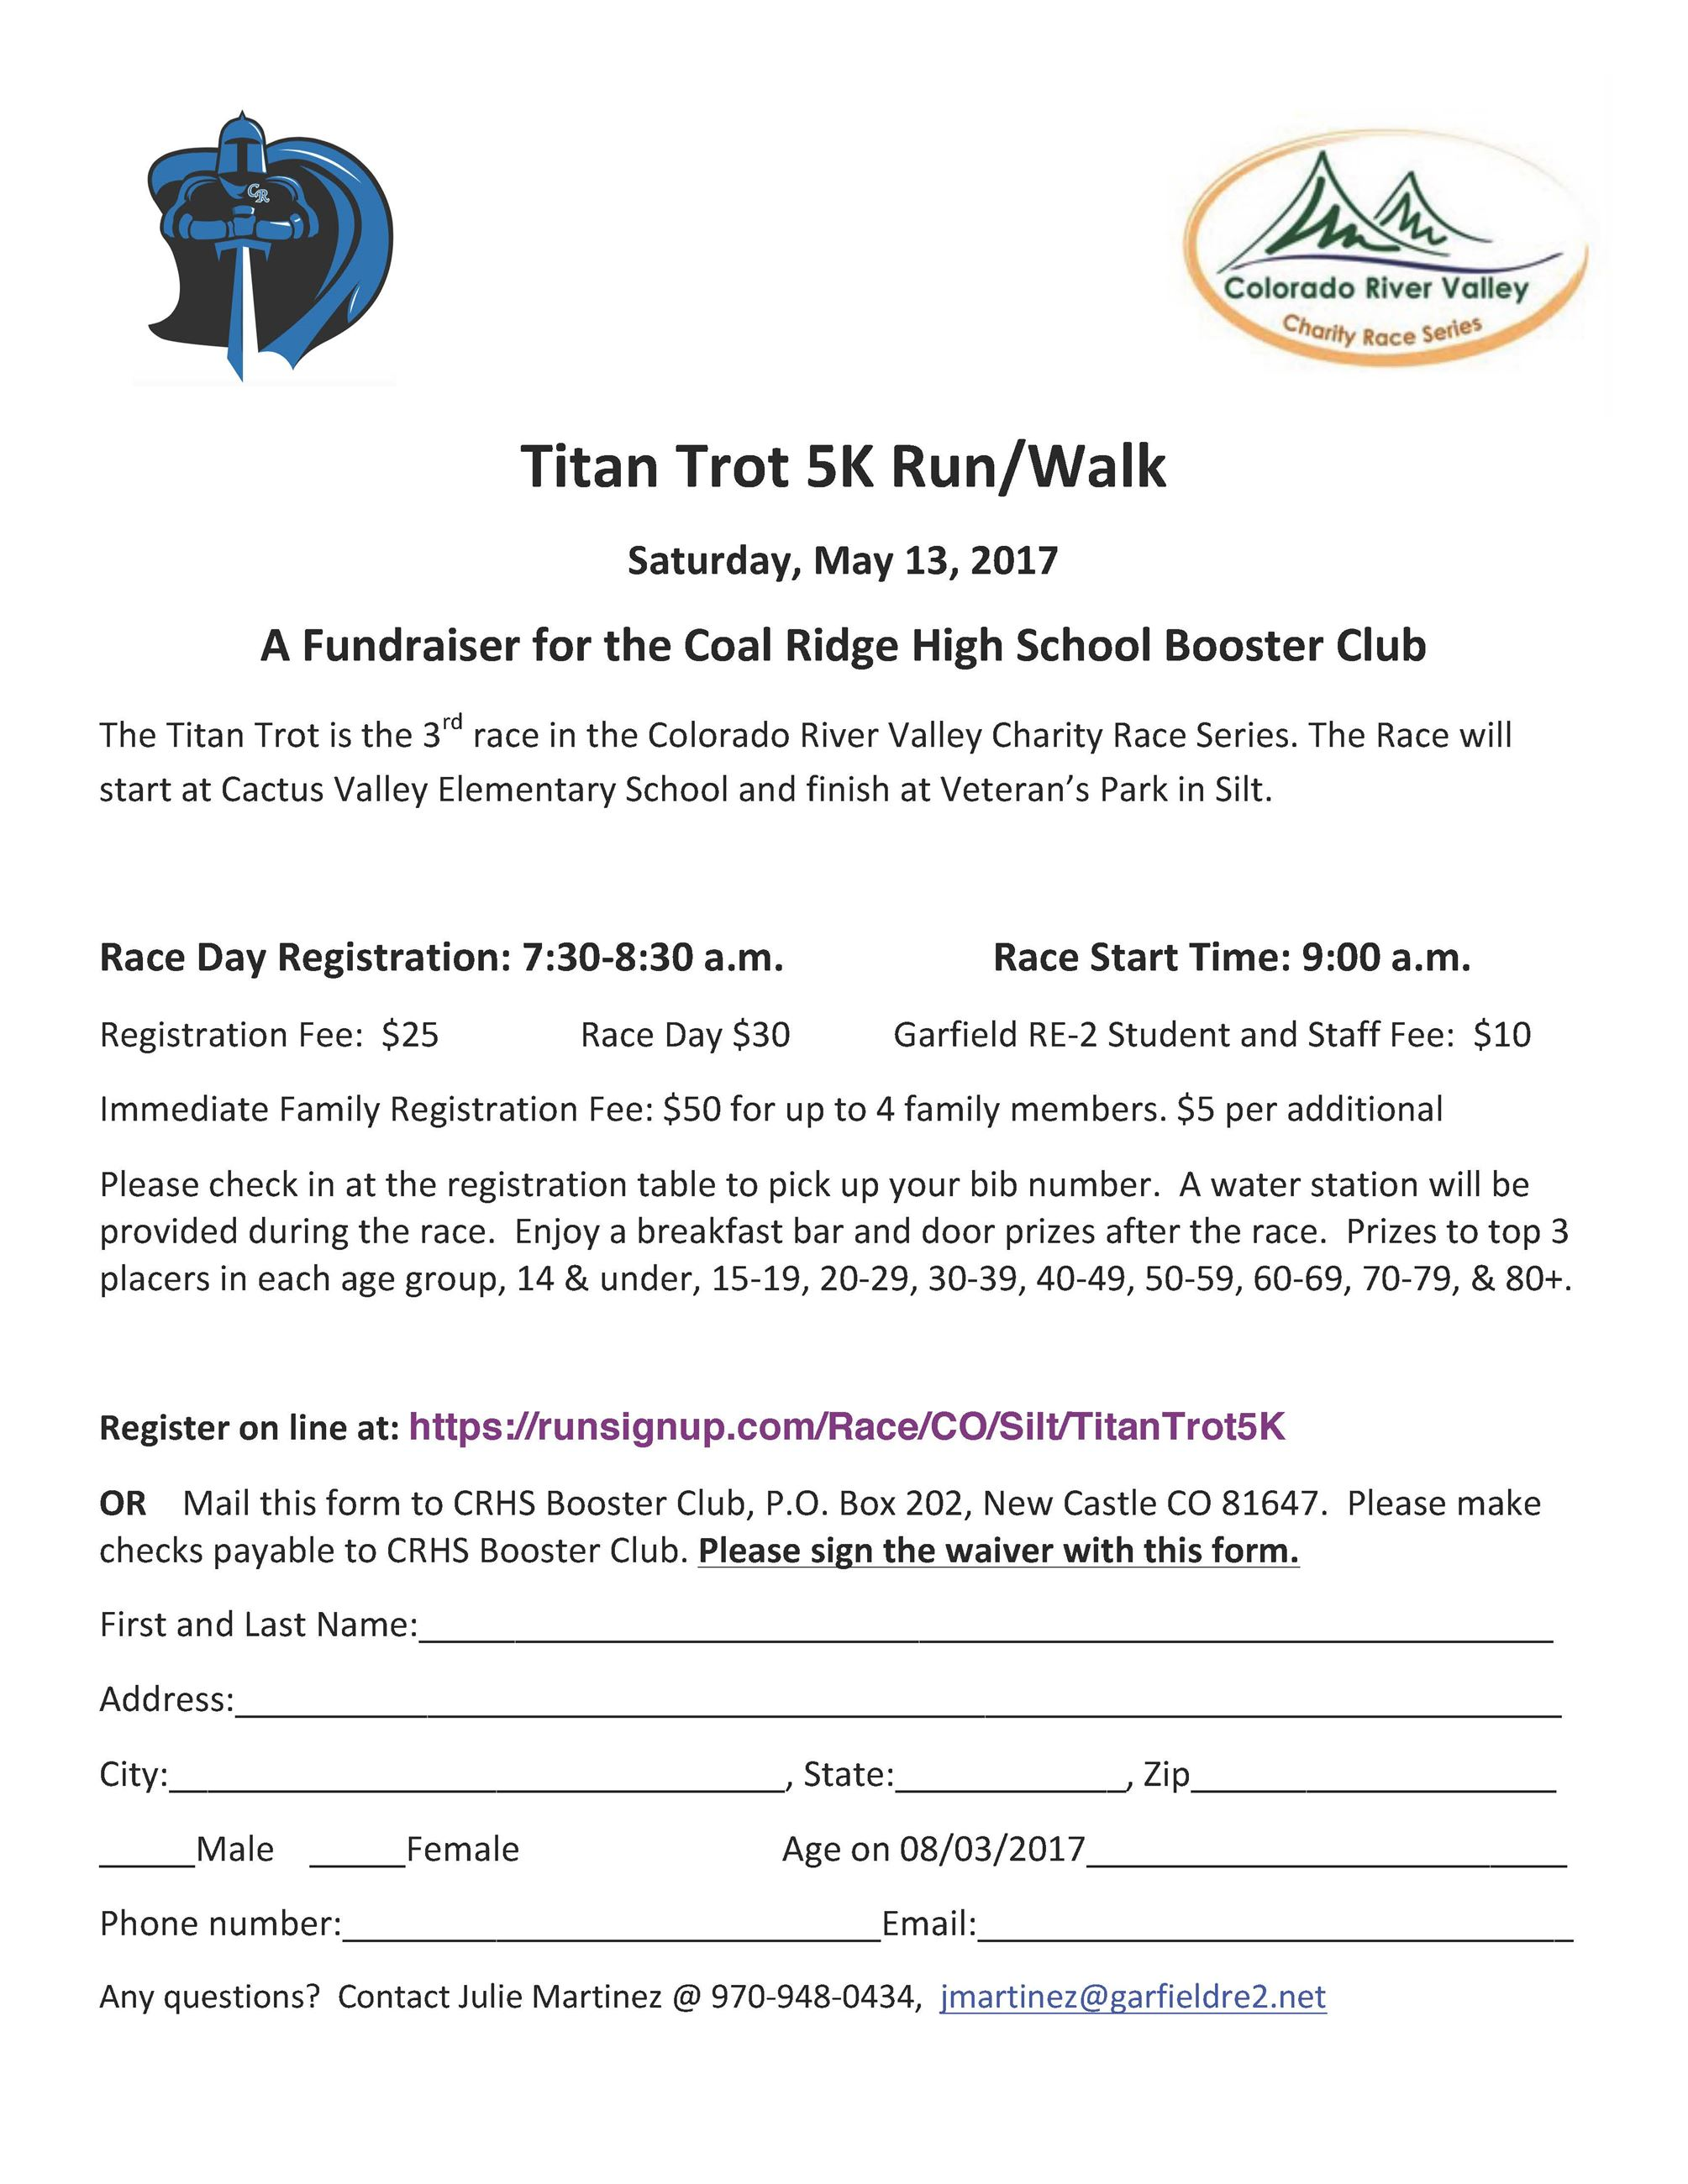 2017 Titan Trot Registration form_Page_1